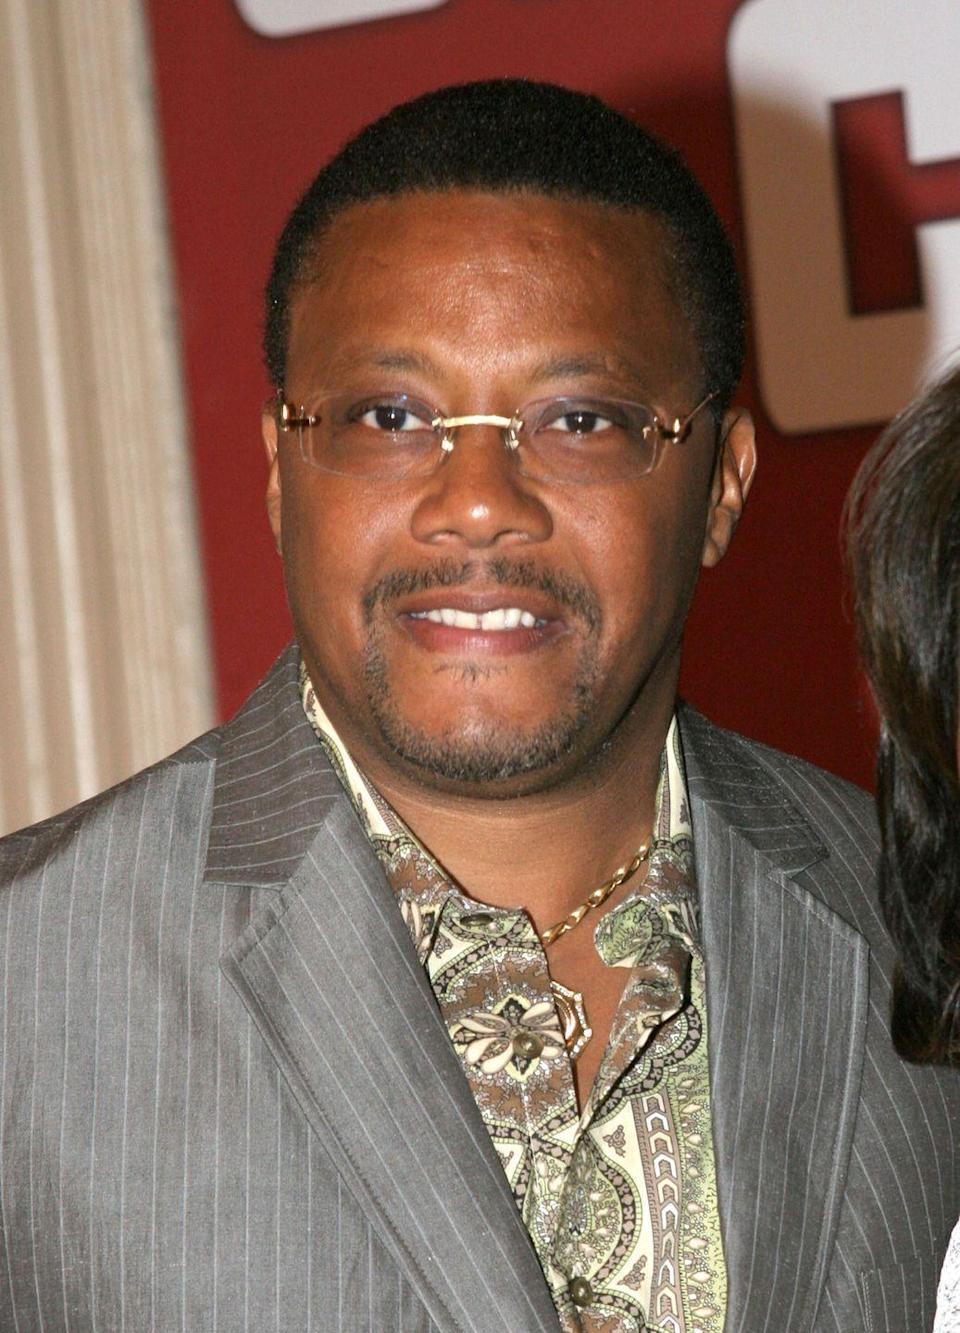 "<p>Before he was an attorney and star of <em>Judge Mathis</em>, Greg Mathis worked at a McDonald's in Michigan. According to his <a href=""http://judgemathistv.com/about-judge"" rel=""nofollow noopener"" target=""_blank"" data-ylk=""slk:website"" class=""link rapid-noclick-resp"">website</a>, he was leading voter registration campaigns on his college campus by day, and working as a swing manager at the restaurant by night.</p>"